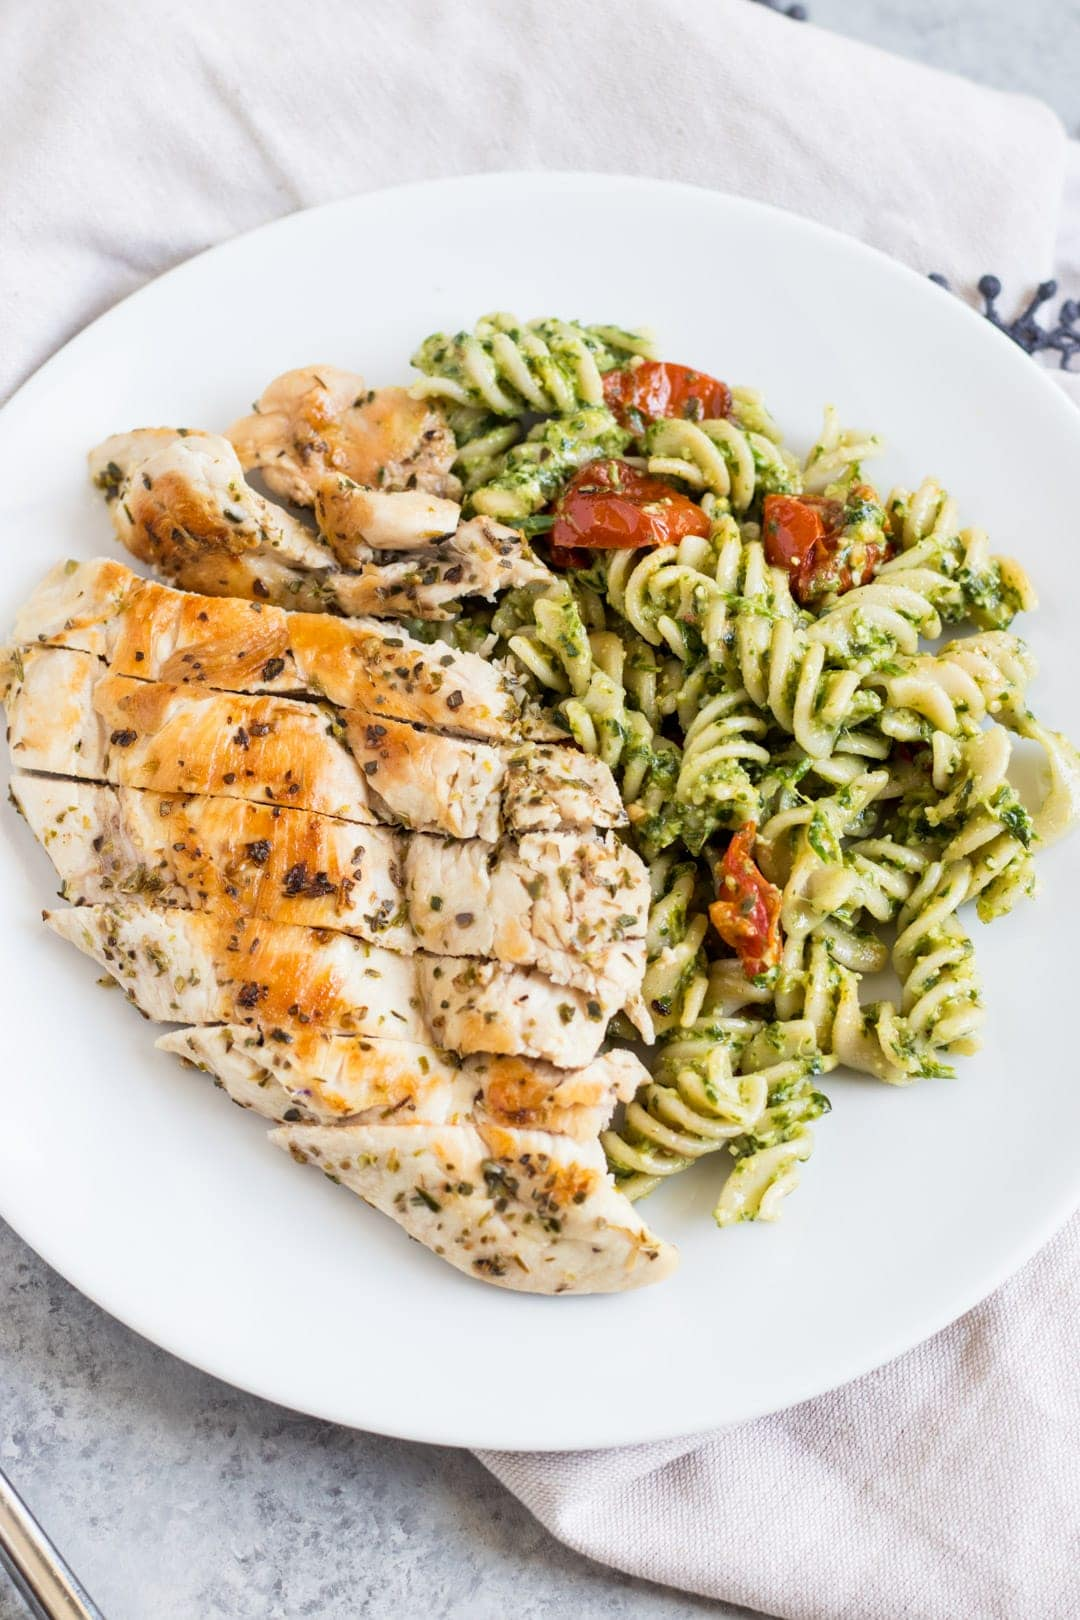 Low FODMAP Pesto Pasta with Grilled Chicken and Roasted Tomatoes